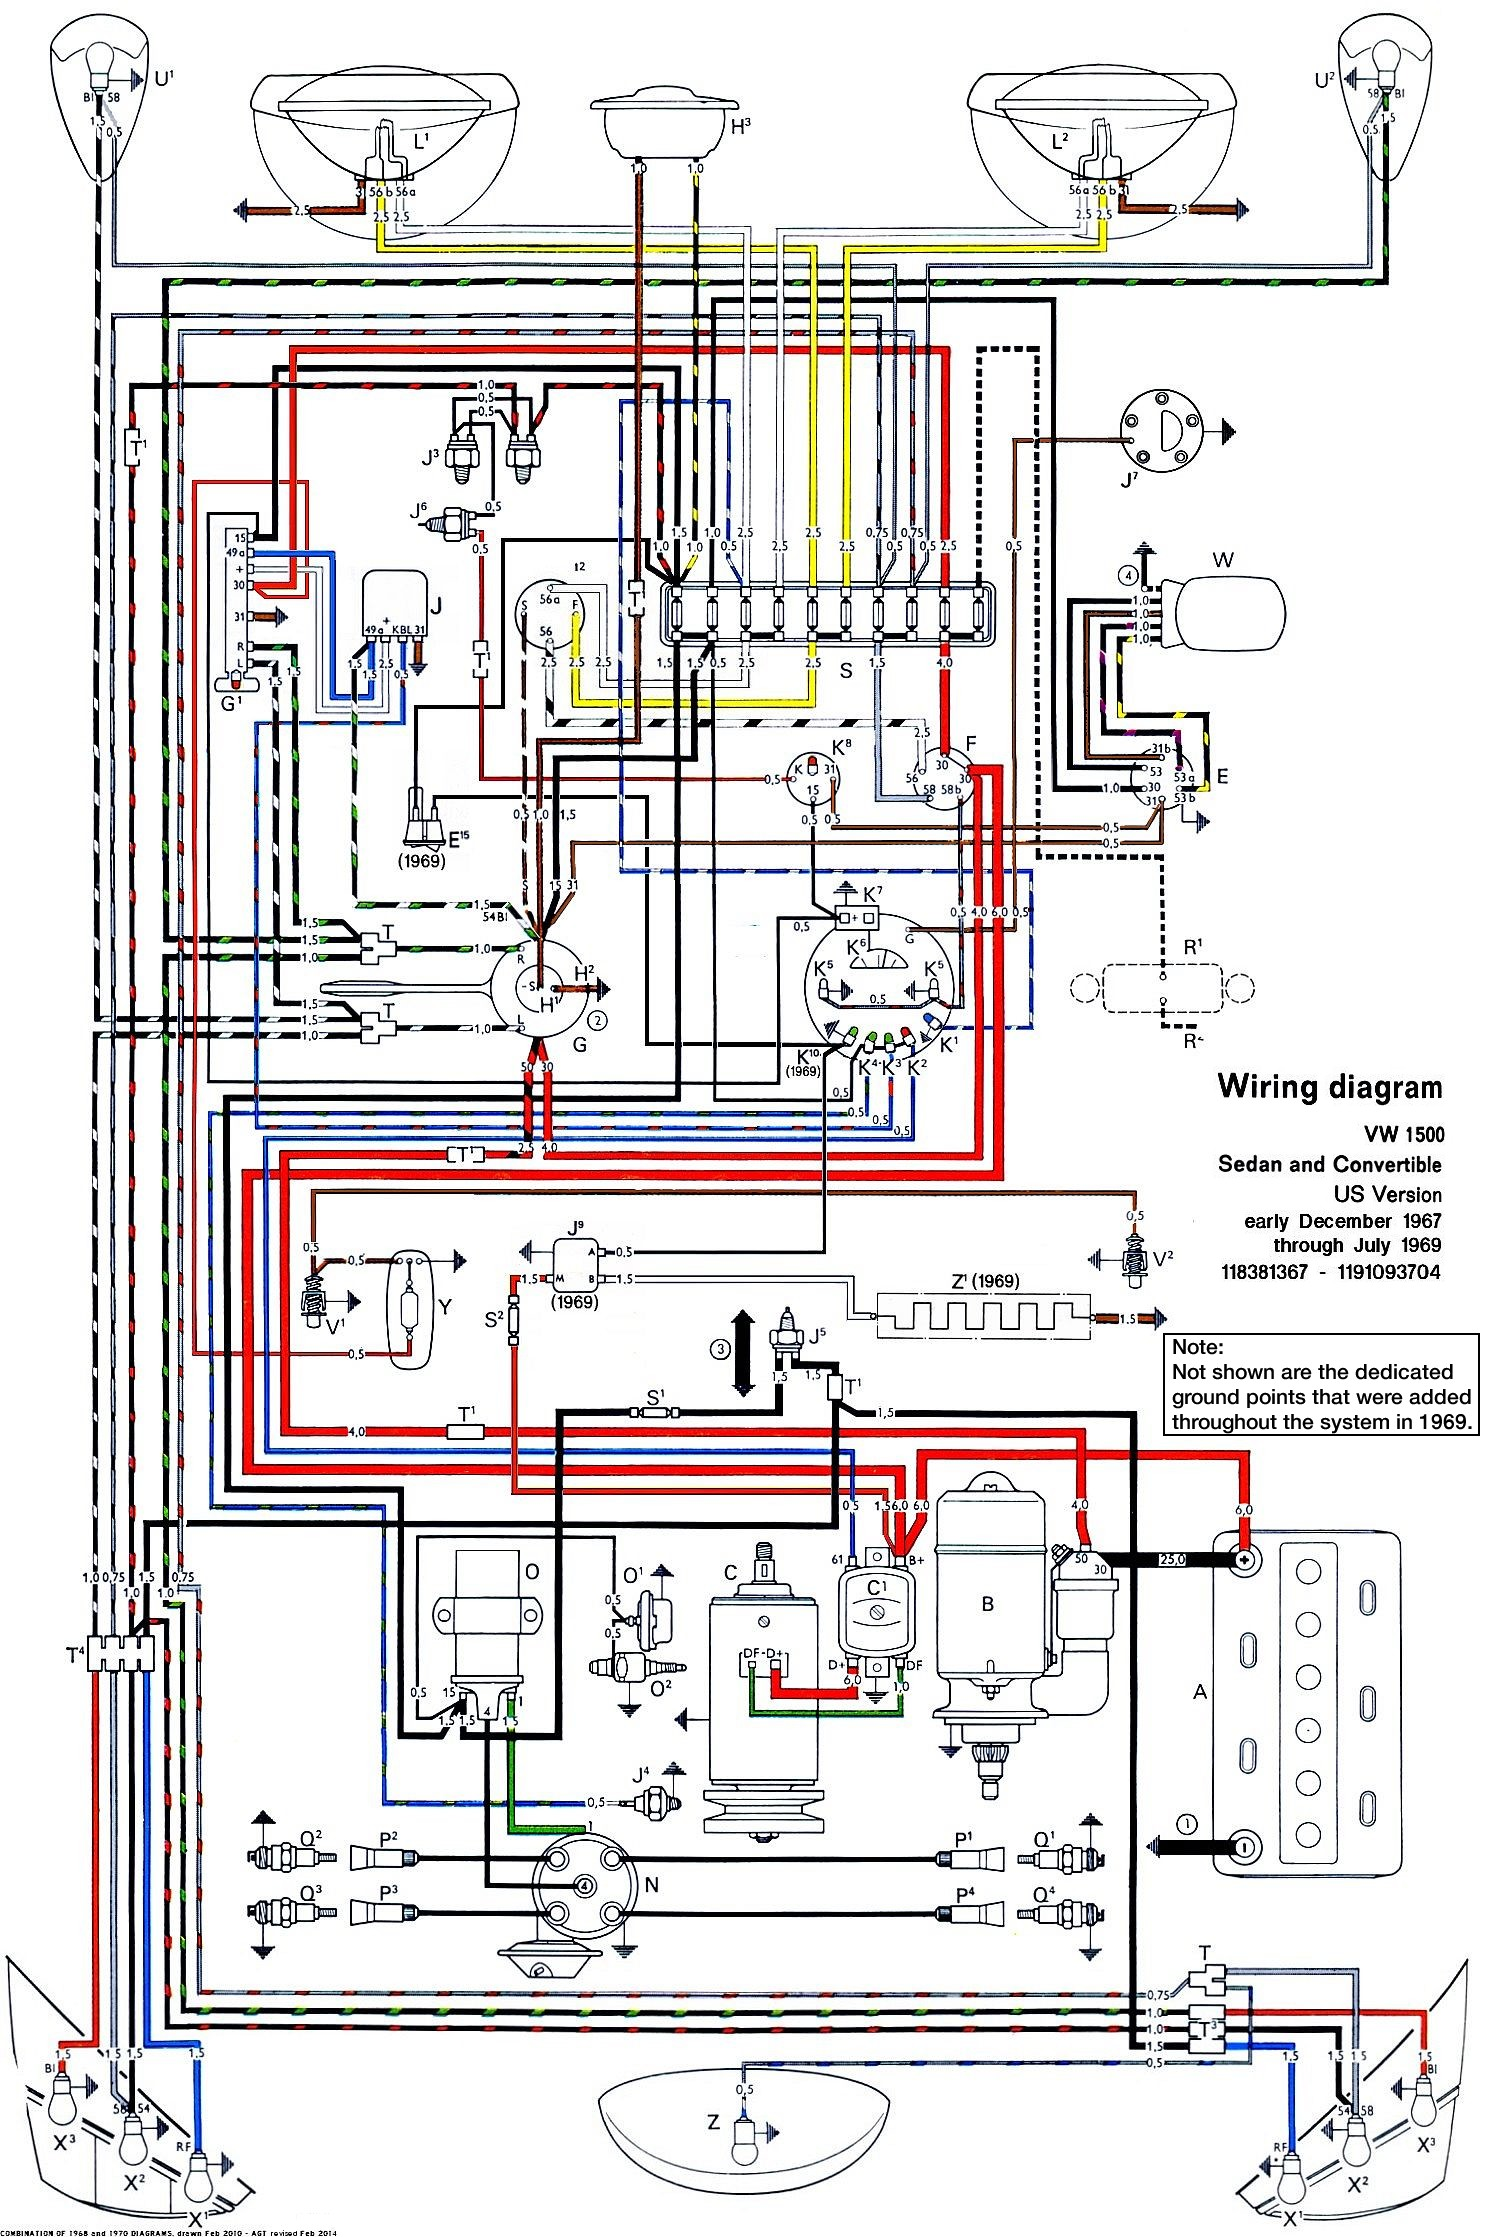 69 vw bug wiring diagram free vehicle wiring diagrams u2022 rh addone tw 80 VW Van 65 VW Van